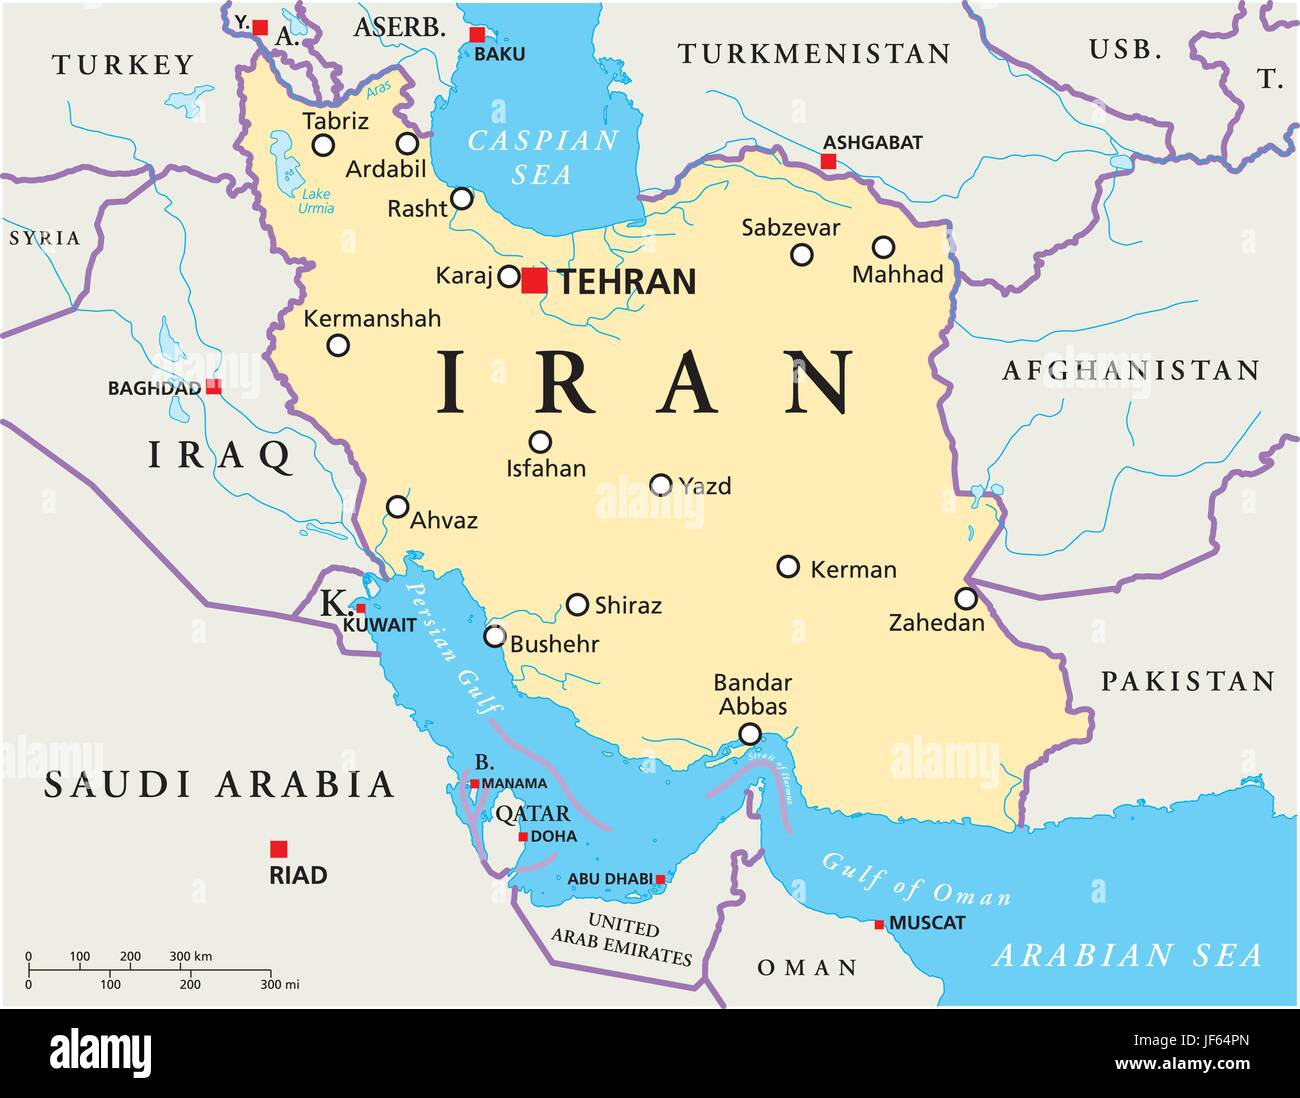 iran, persia, map, atlas, map of the world, political, arab, iran